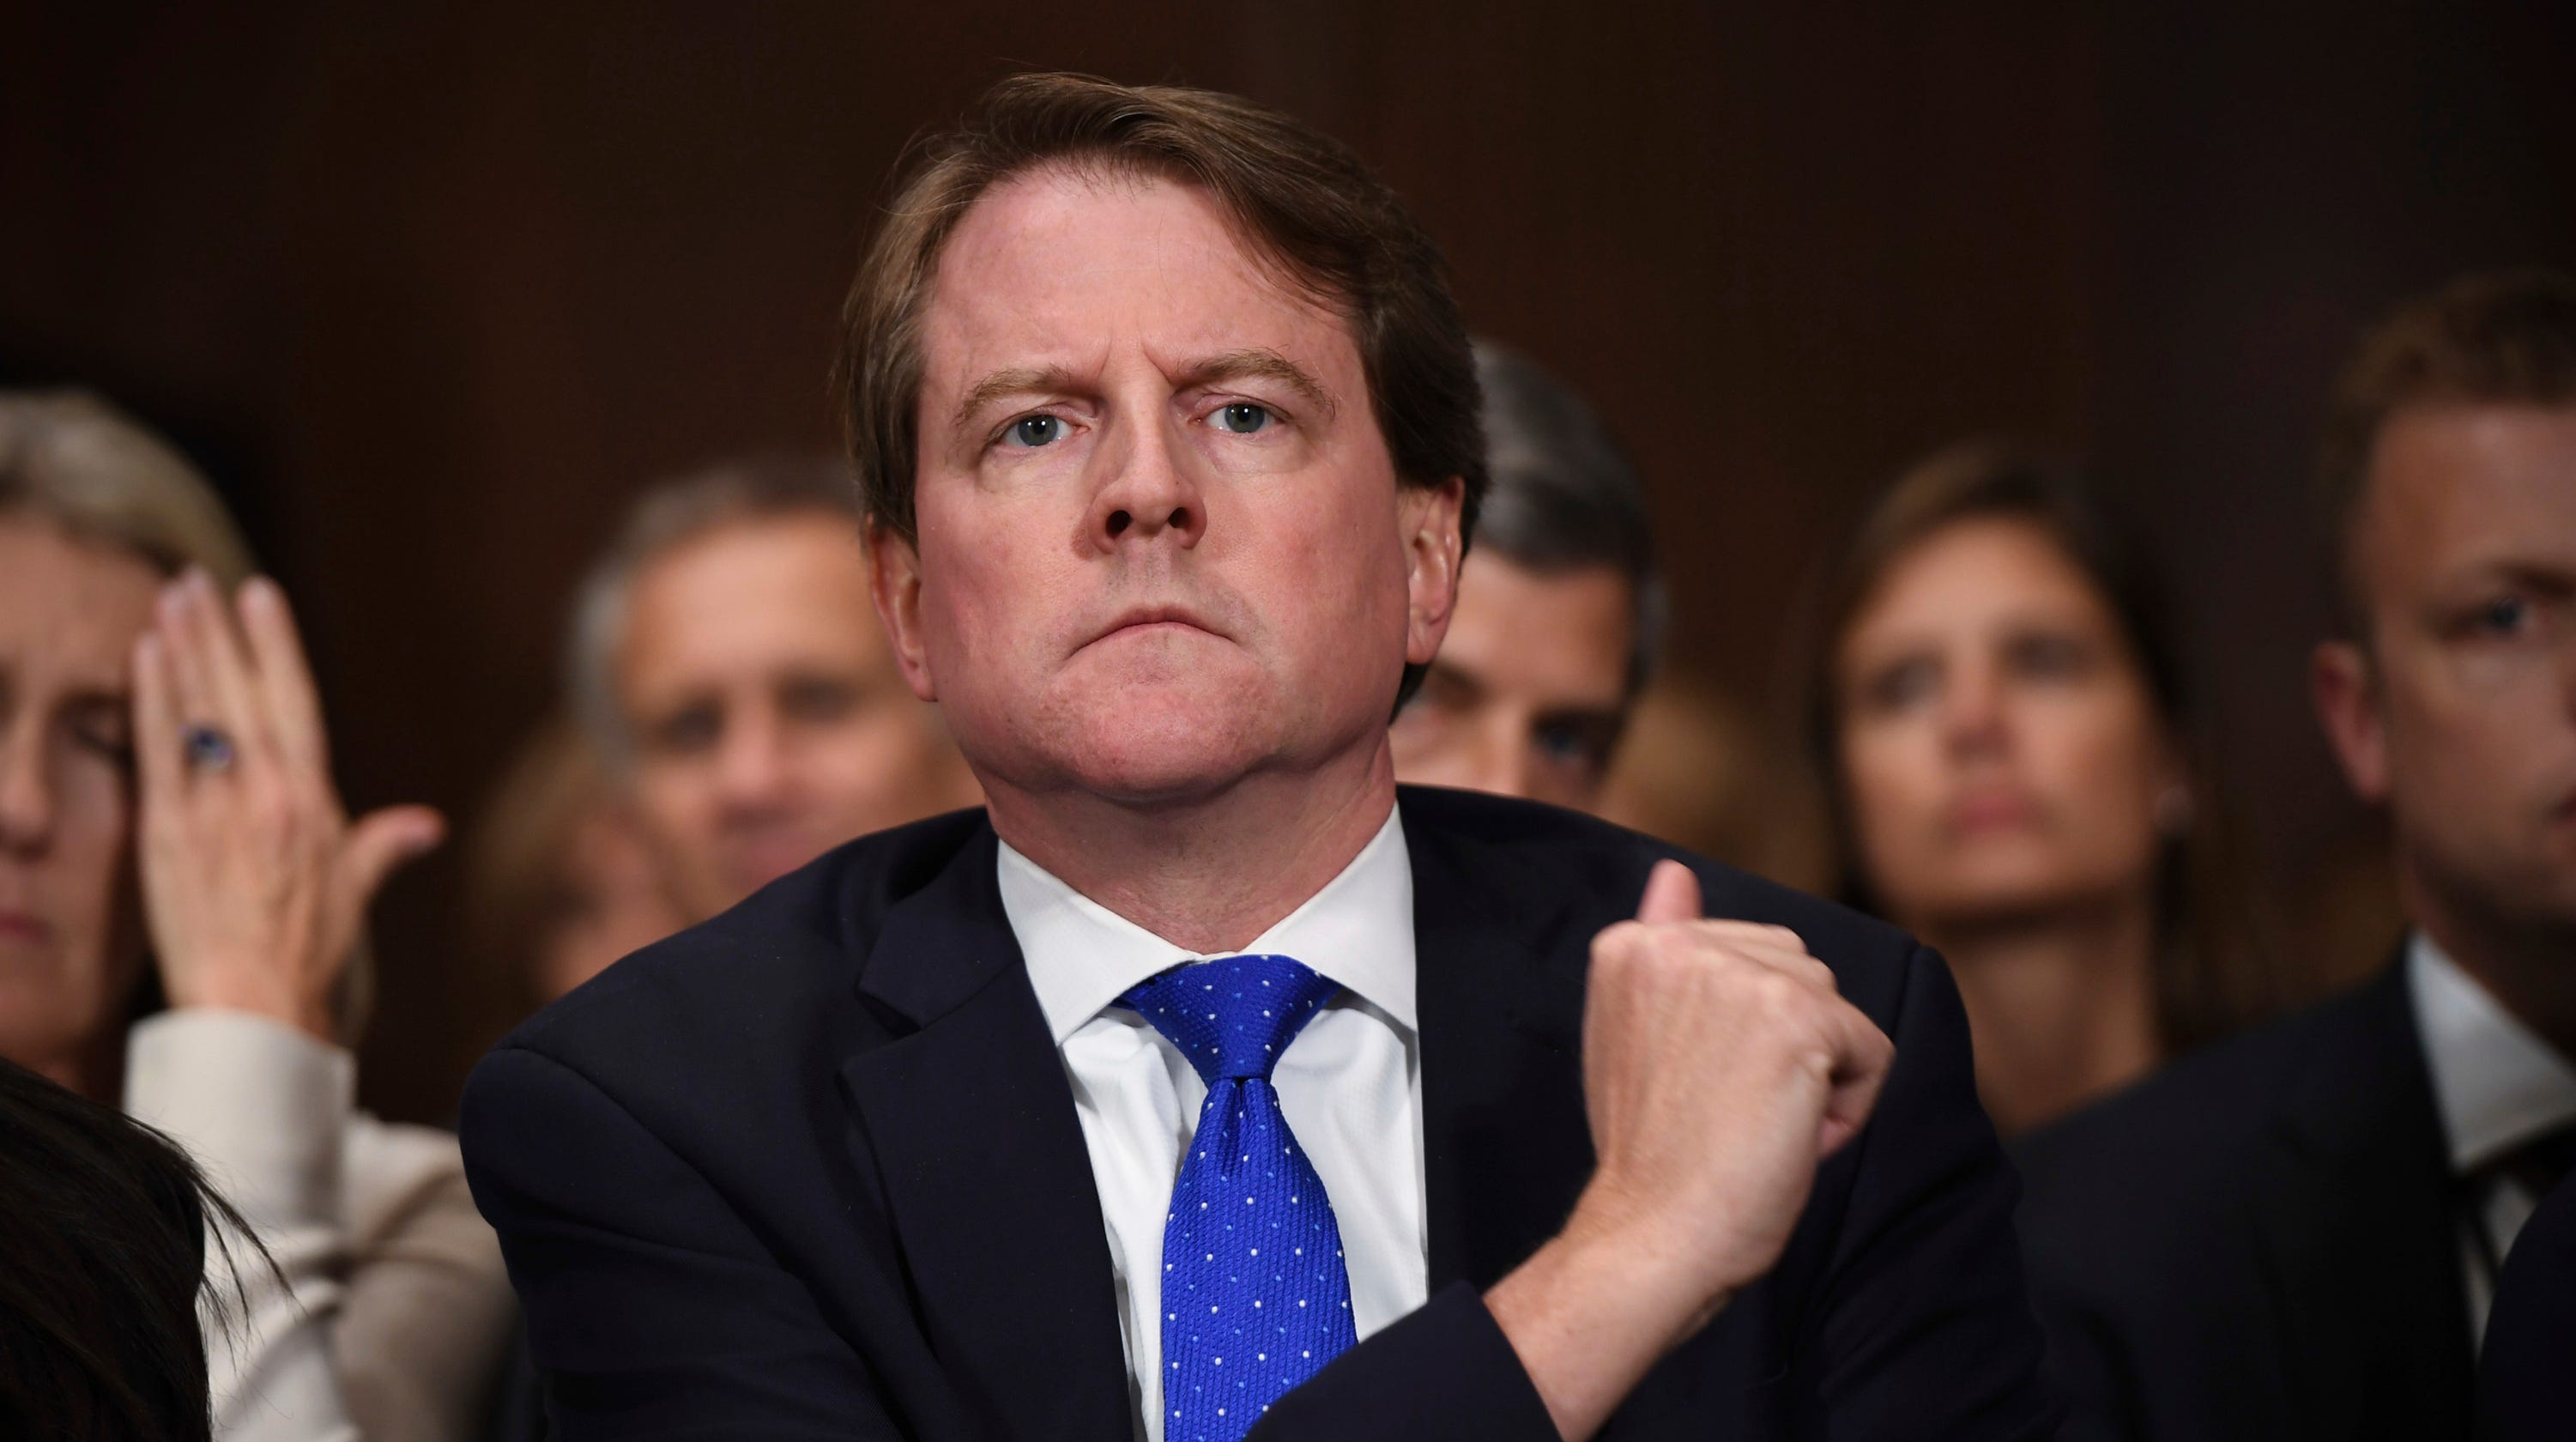 Don McGahn has officially left his position as White House counsel, official says